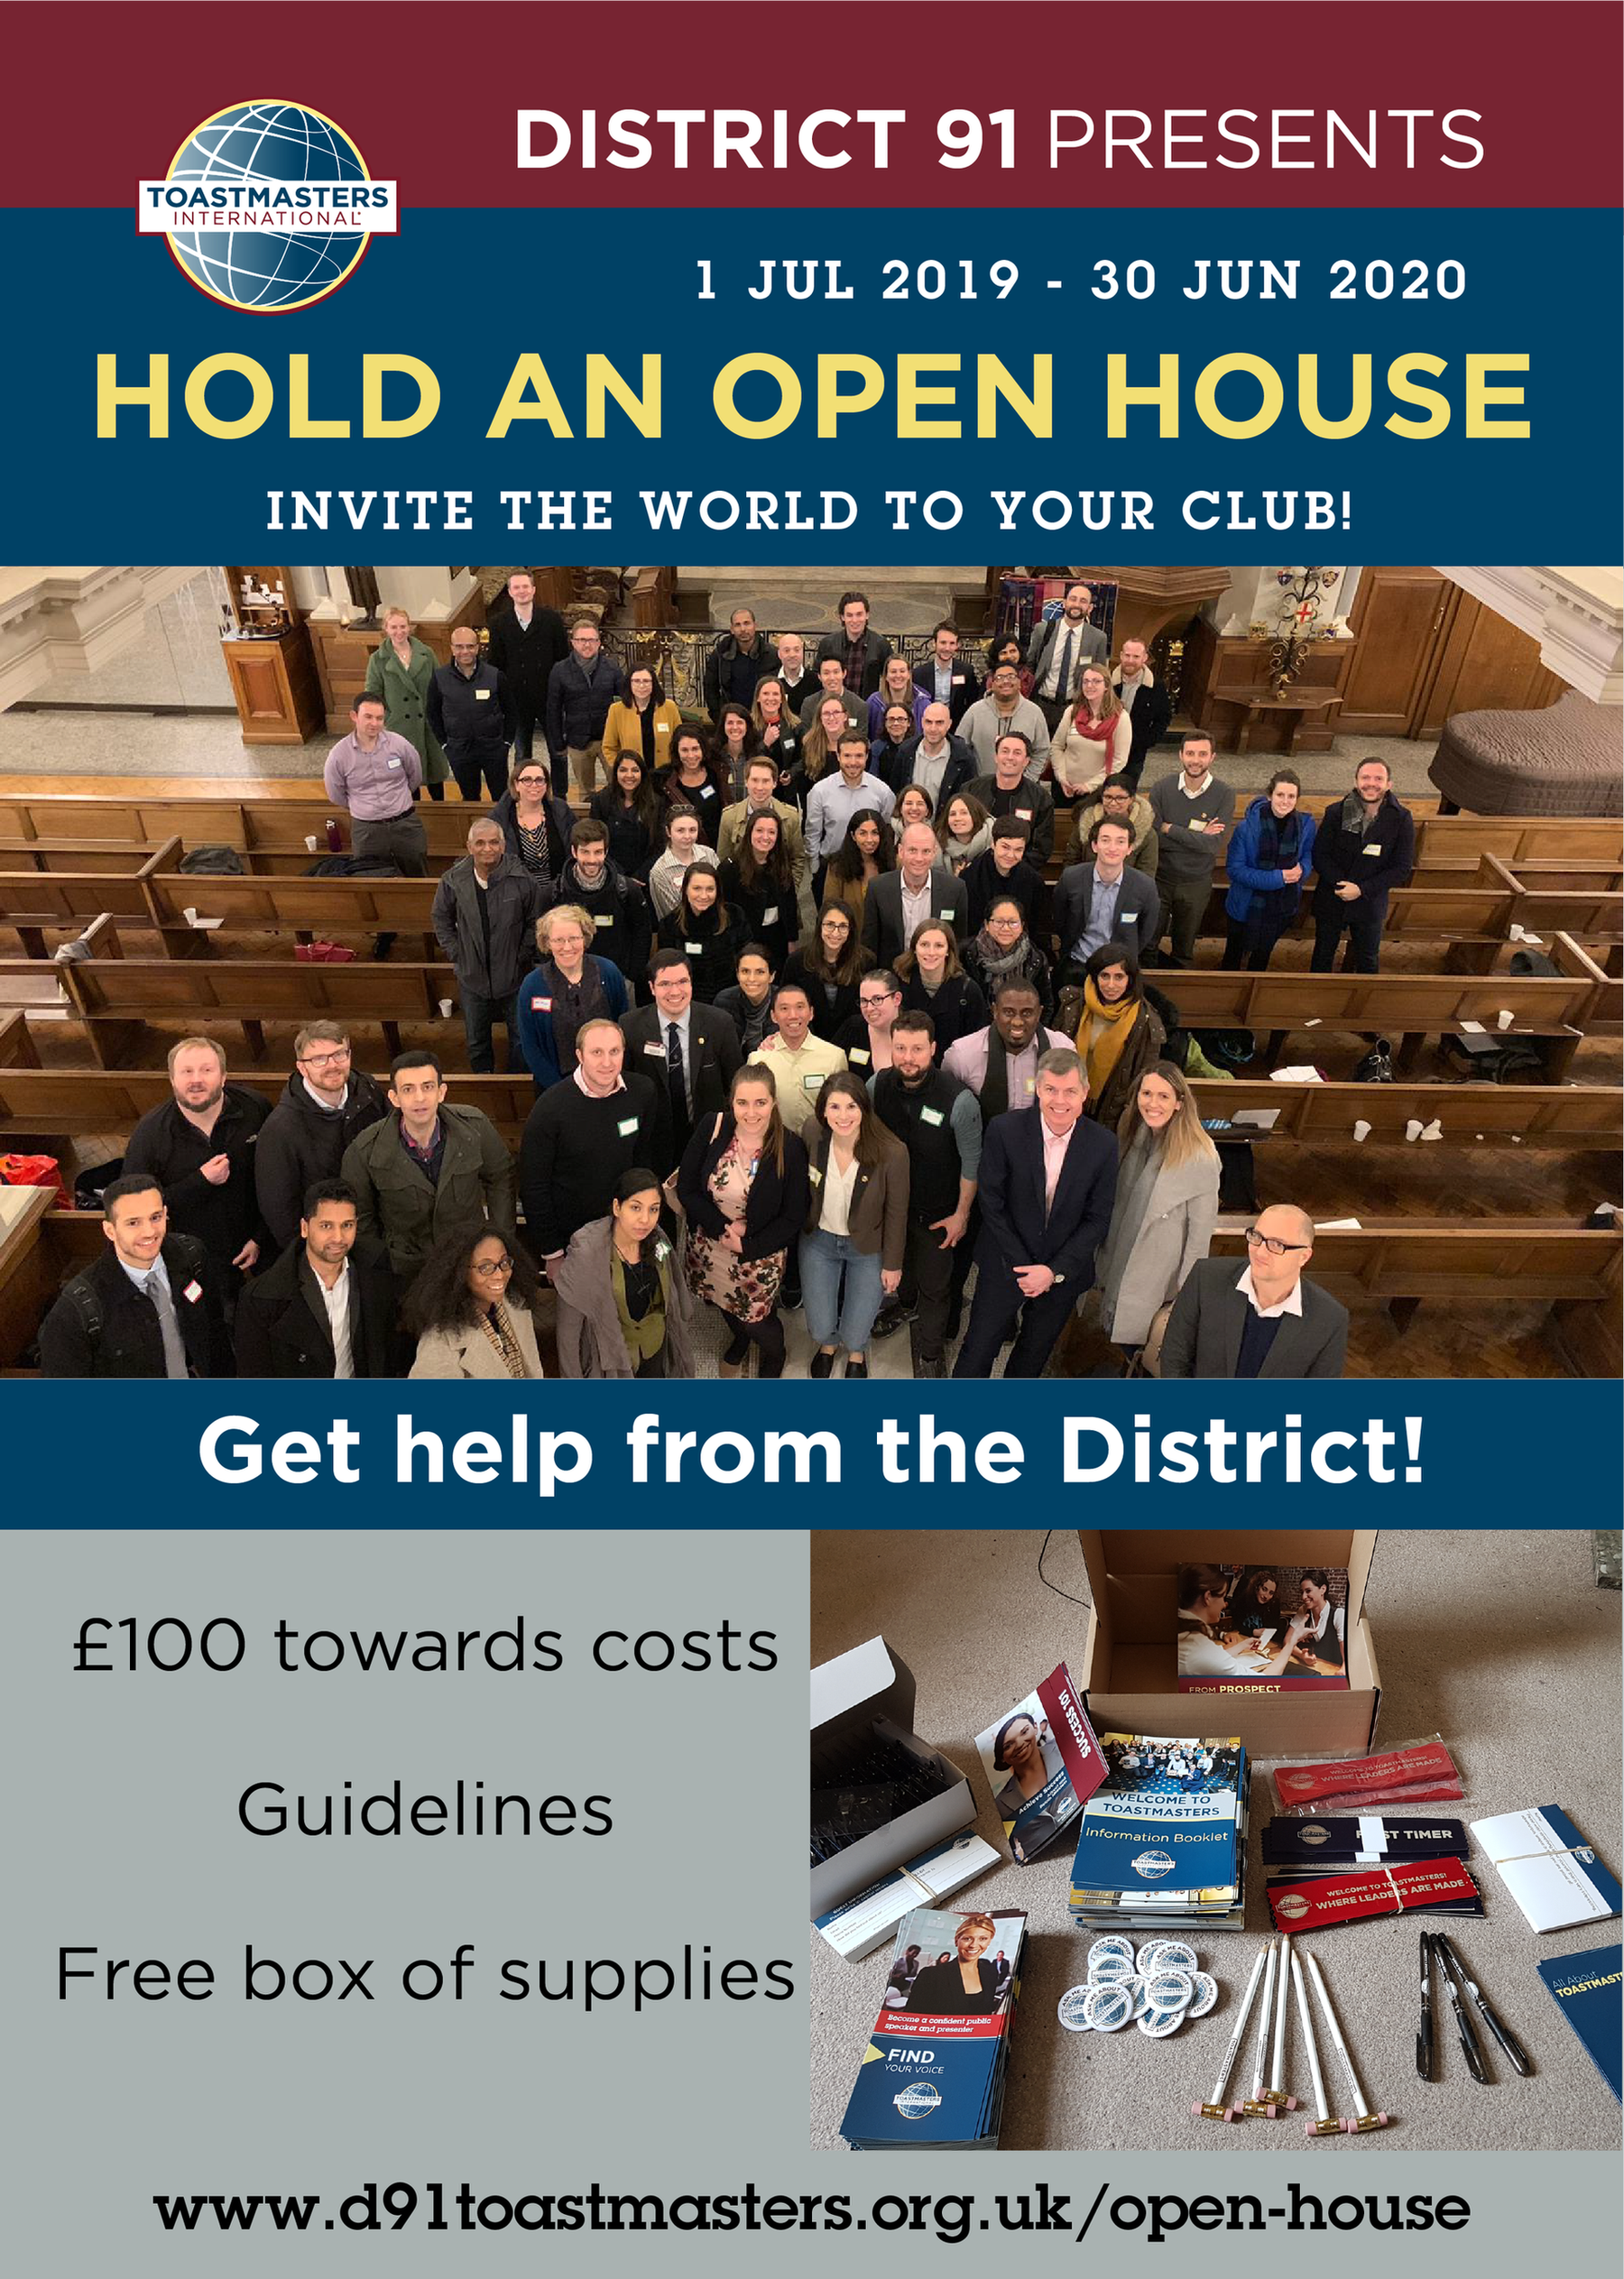 Open-house-poster-1